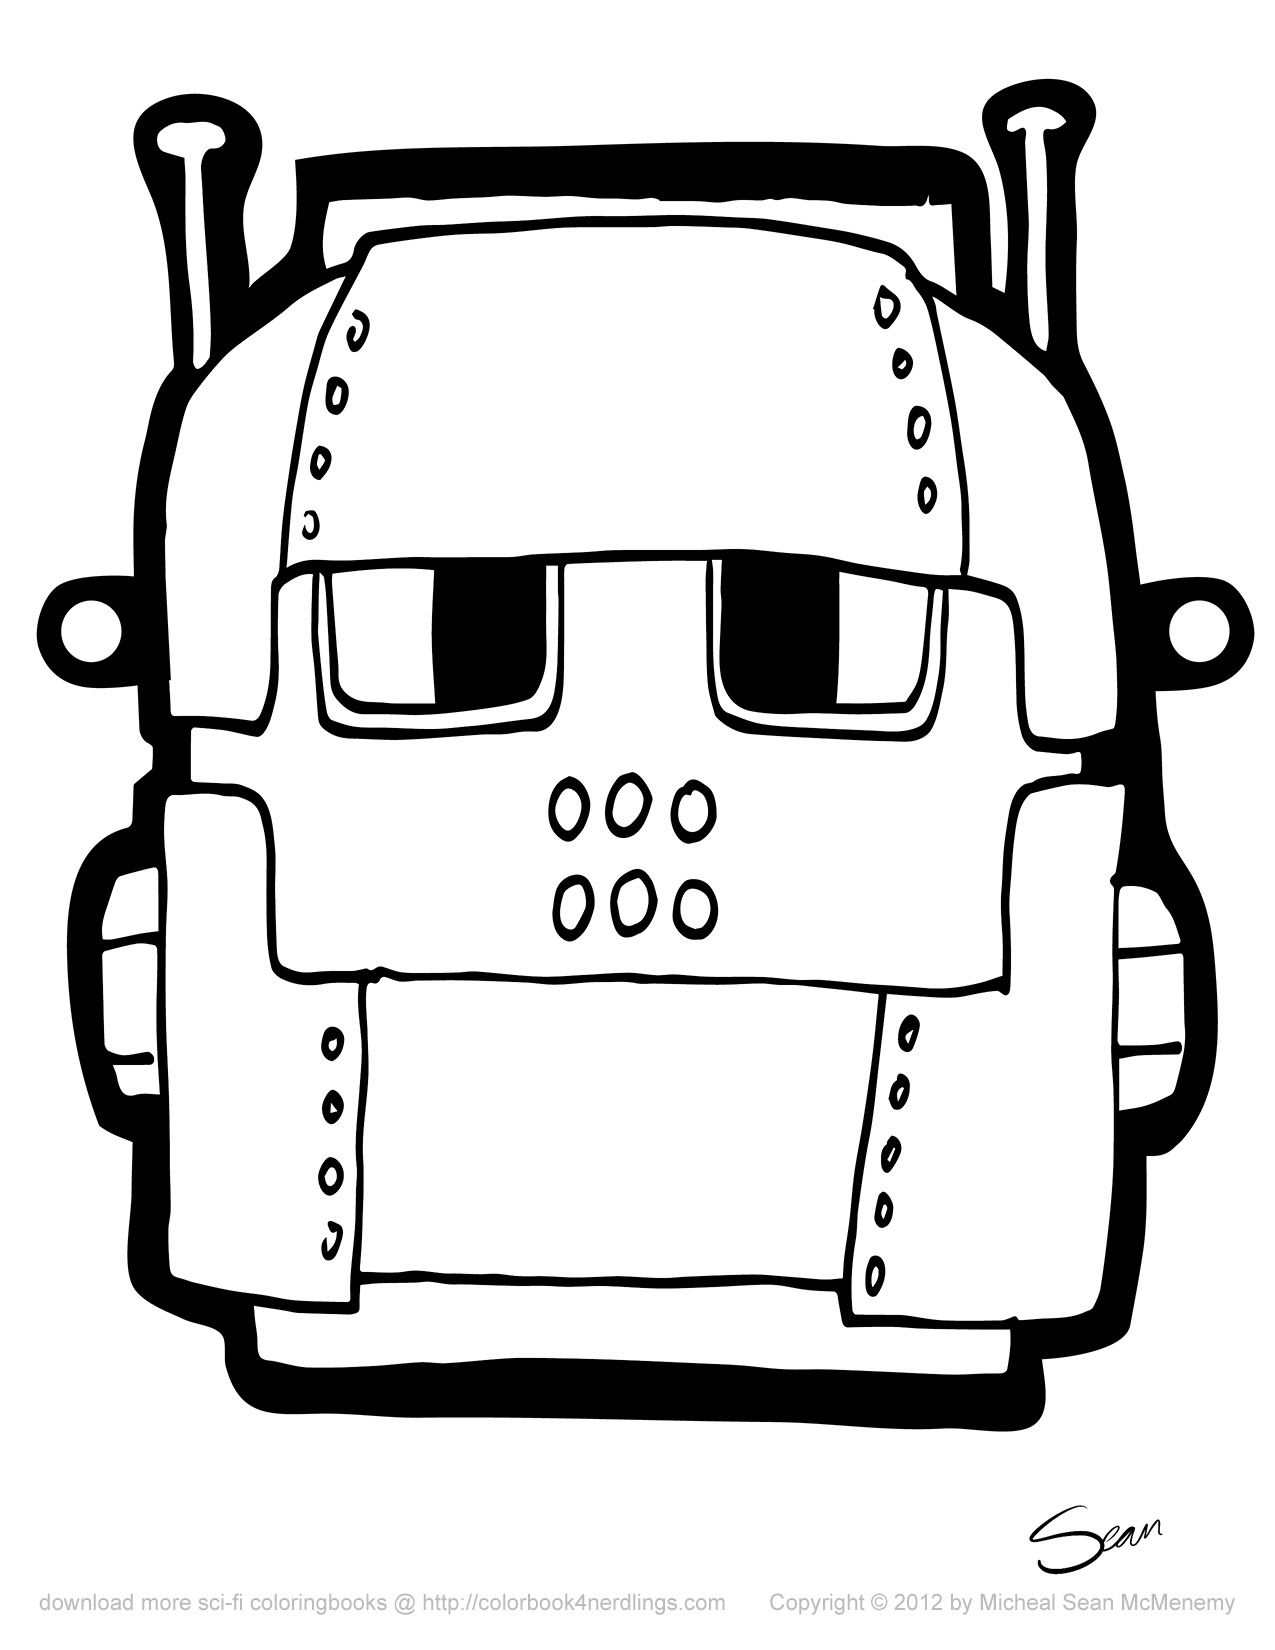 Free coloring pages robots - Free Coloring Books For Nerdlings 8 Robot Mask Printables